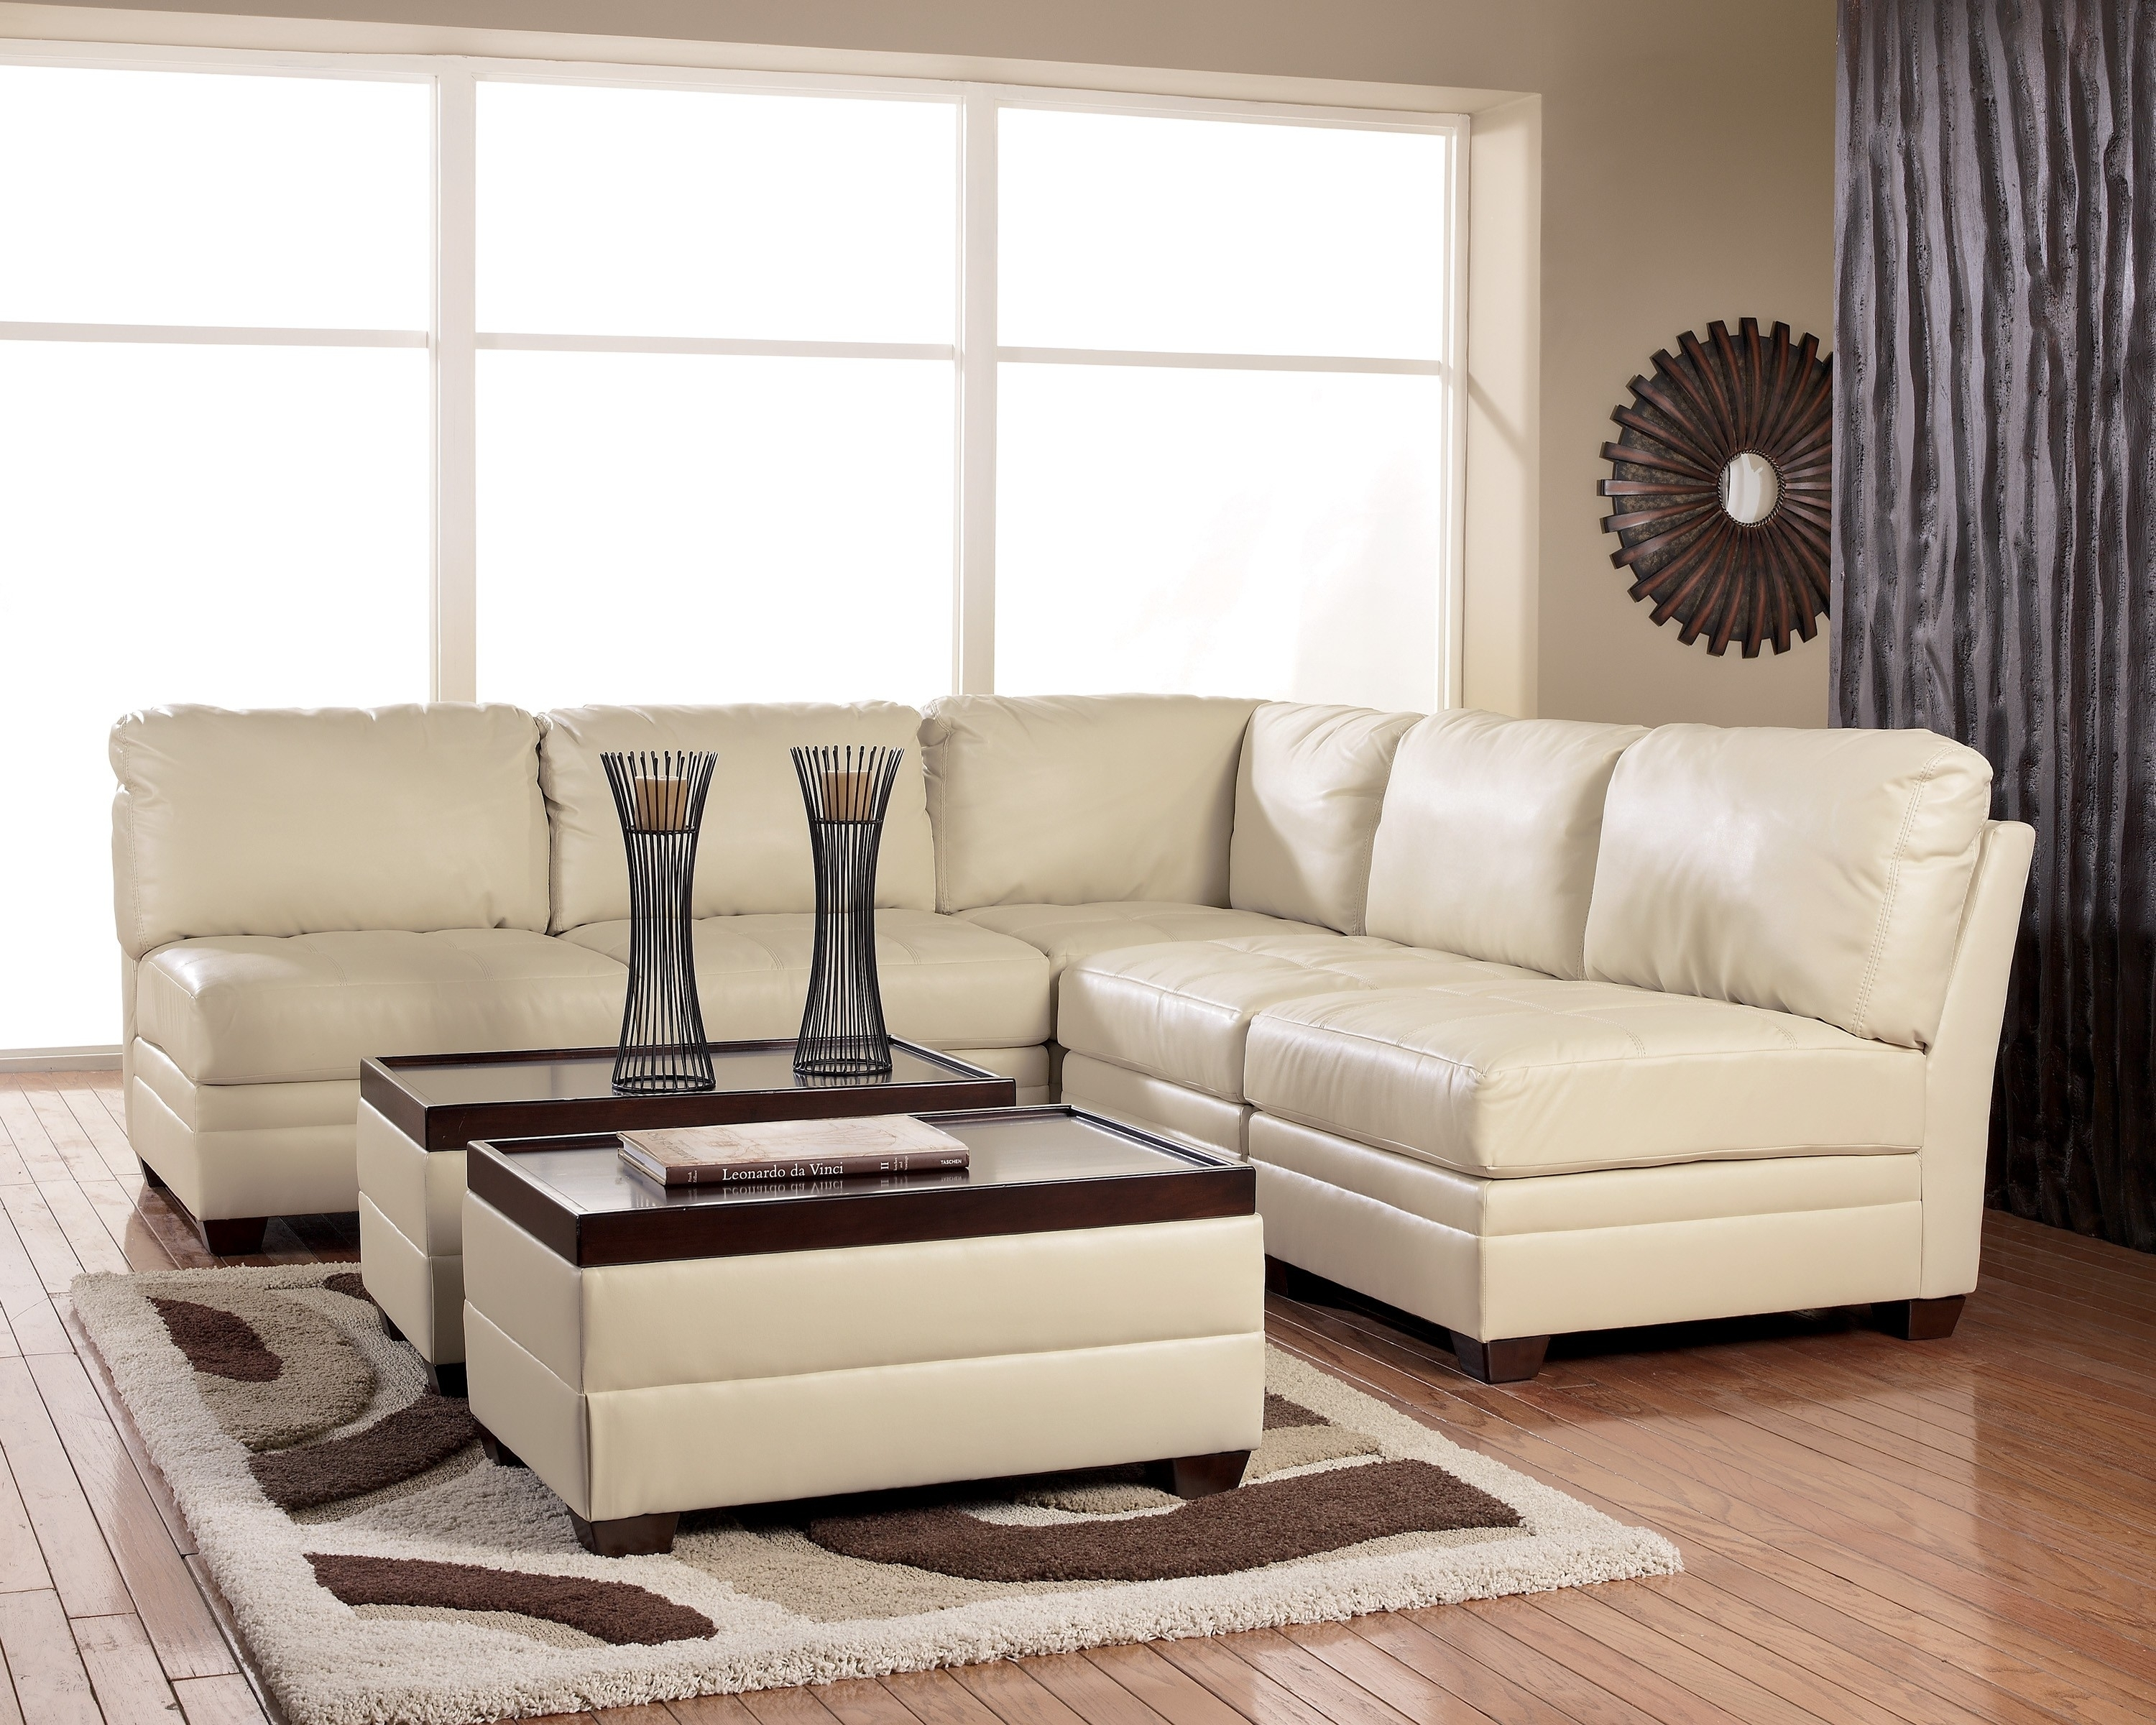 Living Room : Sectional Sofas From Ashley Furniture Sectional Sofas regarding Sectional Sofas at Ashley